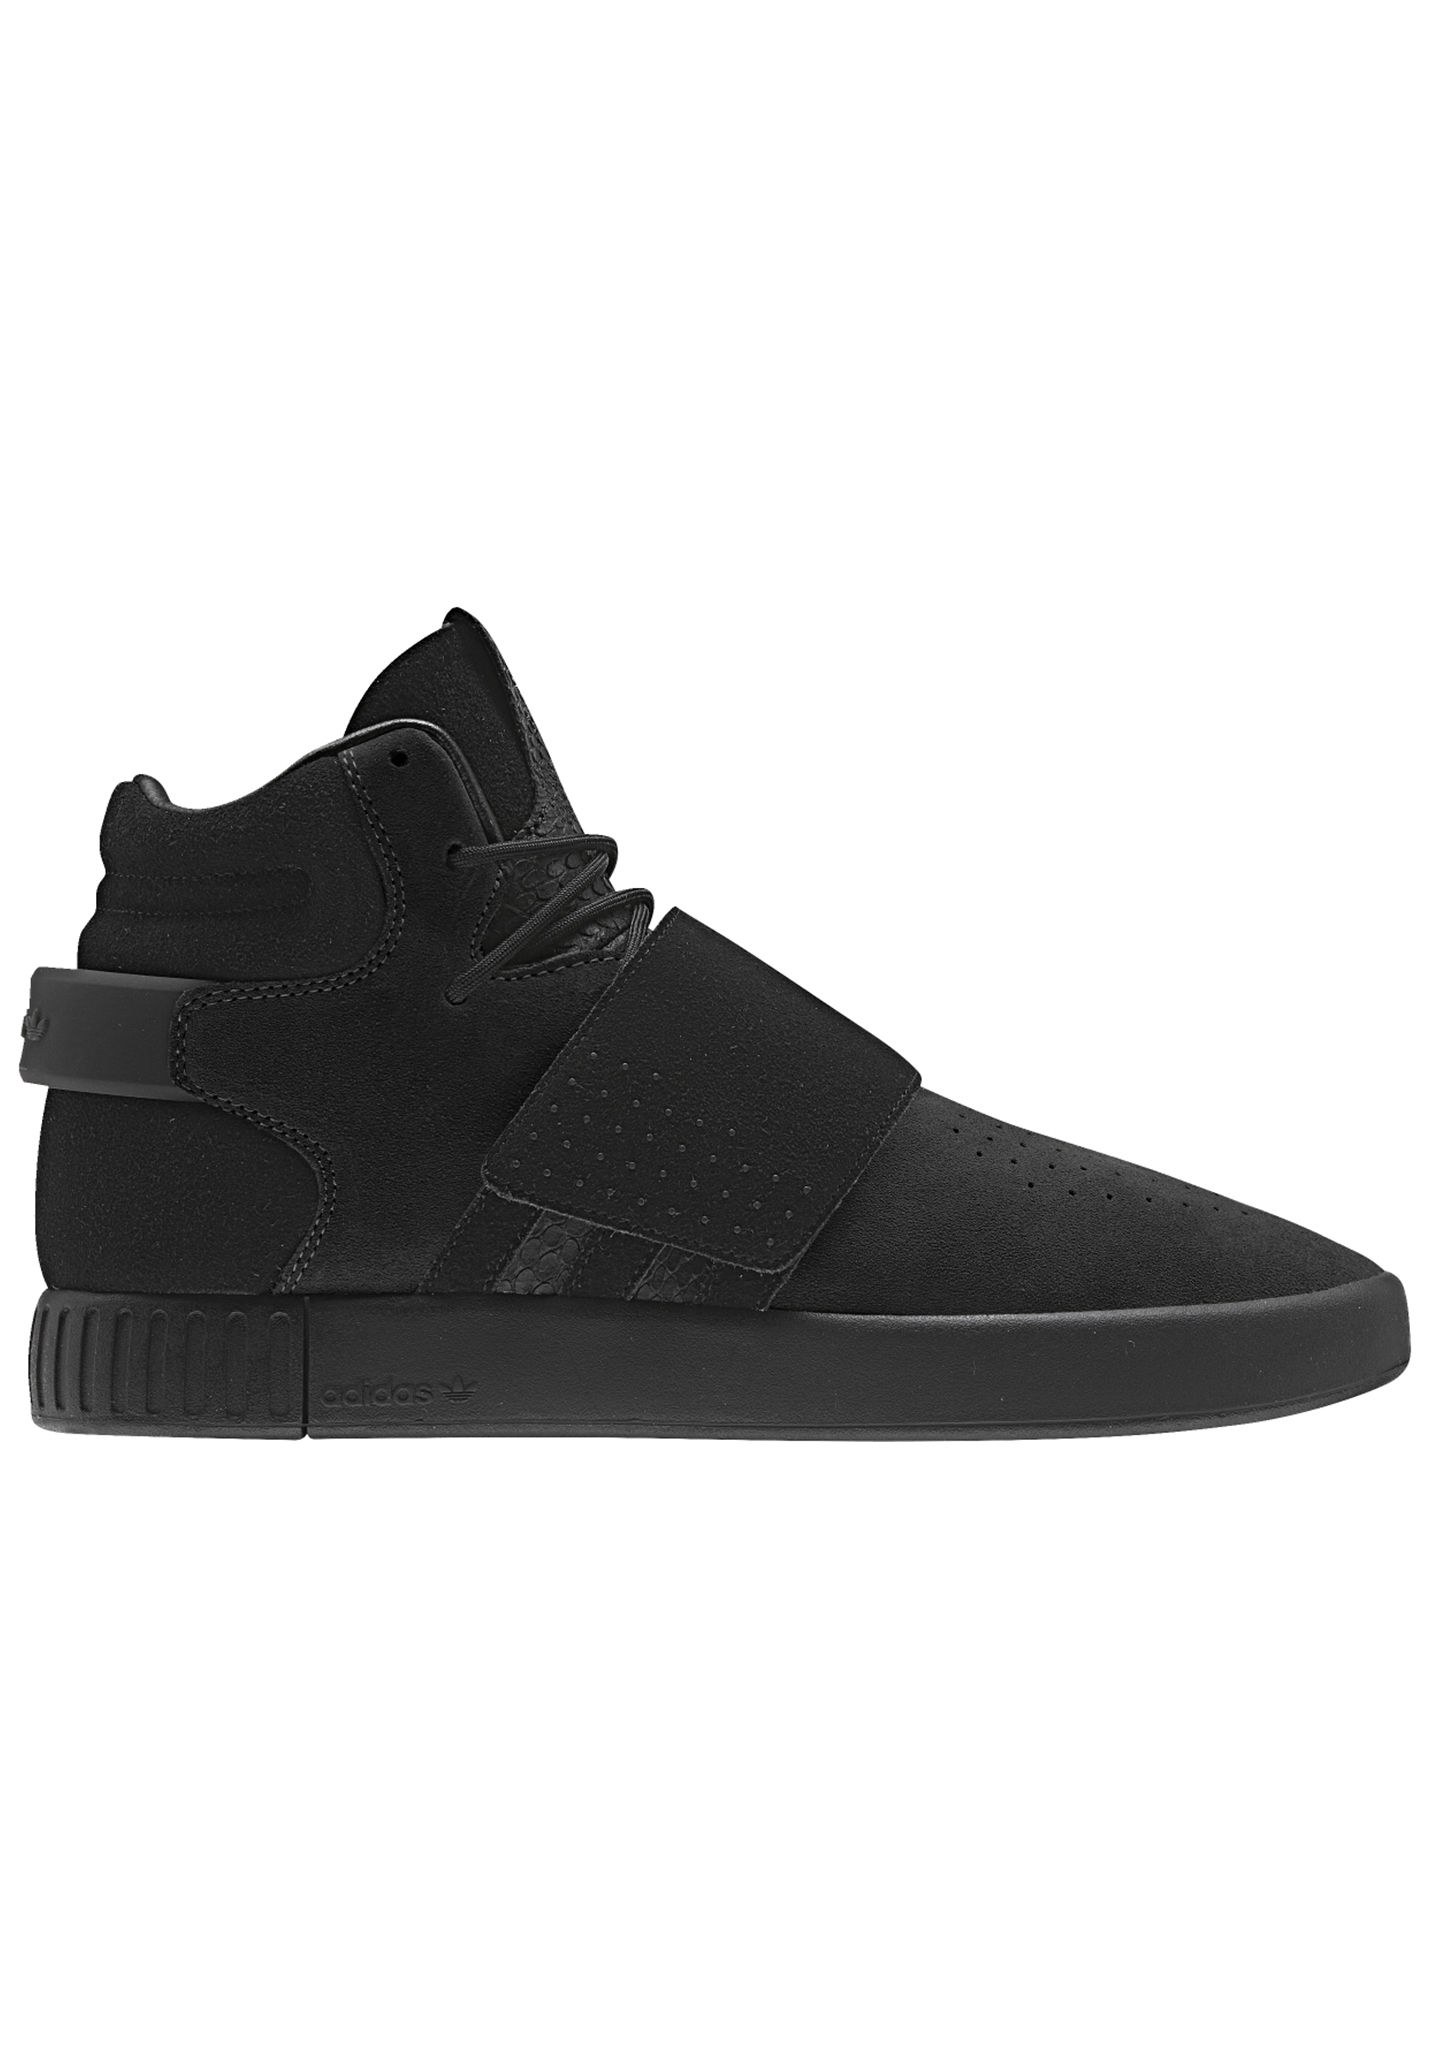 super popular 016c9 cb625 ADIDAS ORIGINALS Tubular Invader Strap - Sneakers for Men - Black